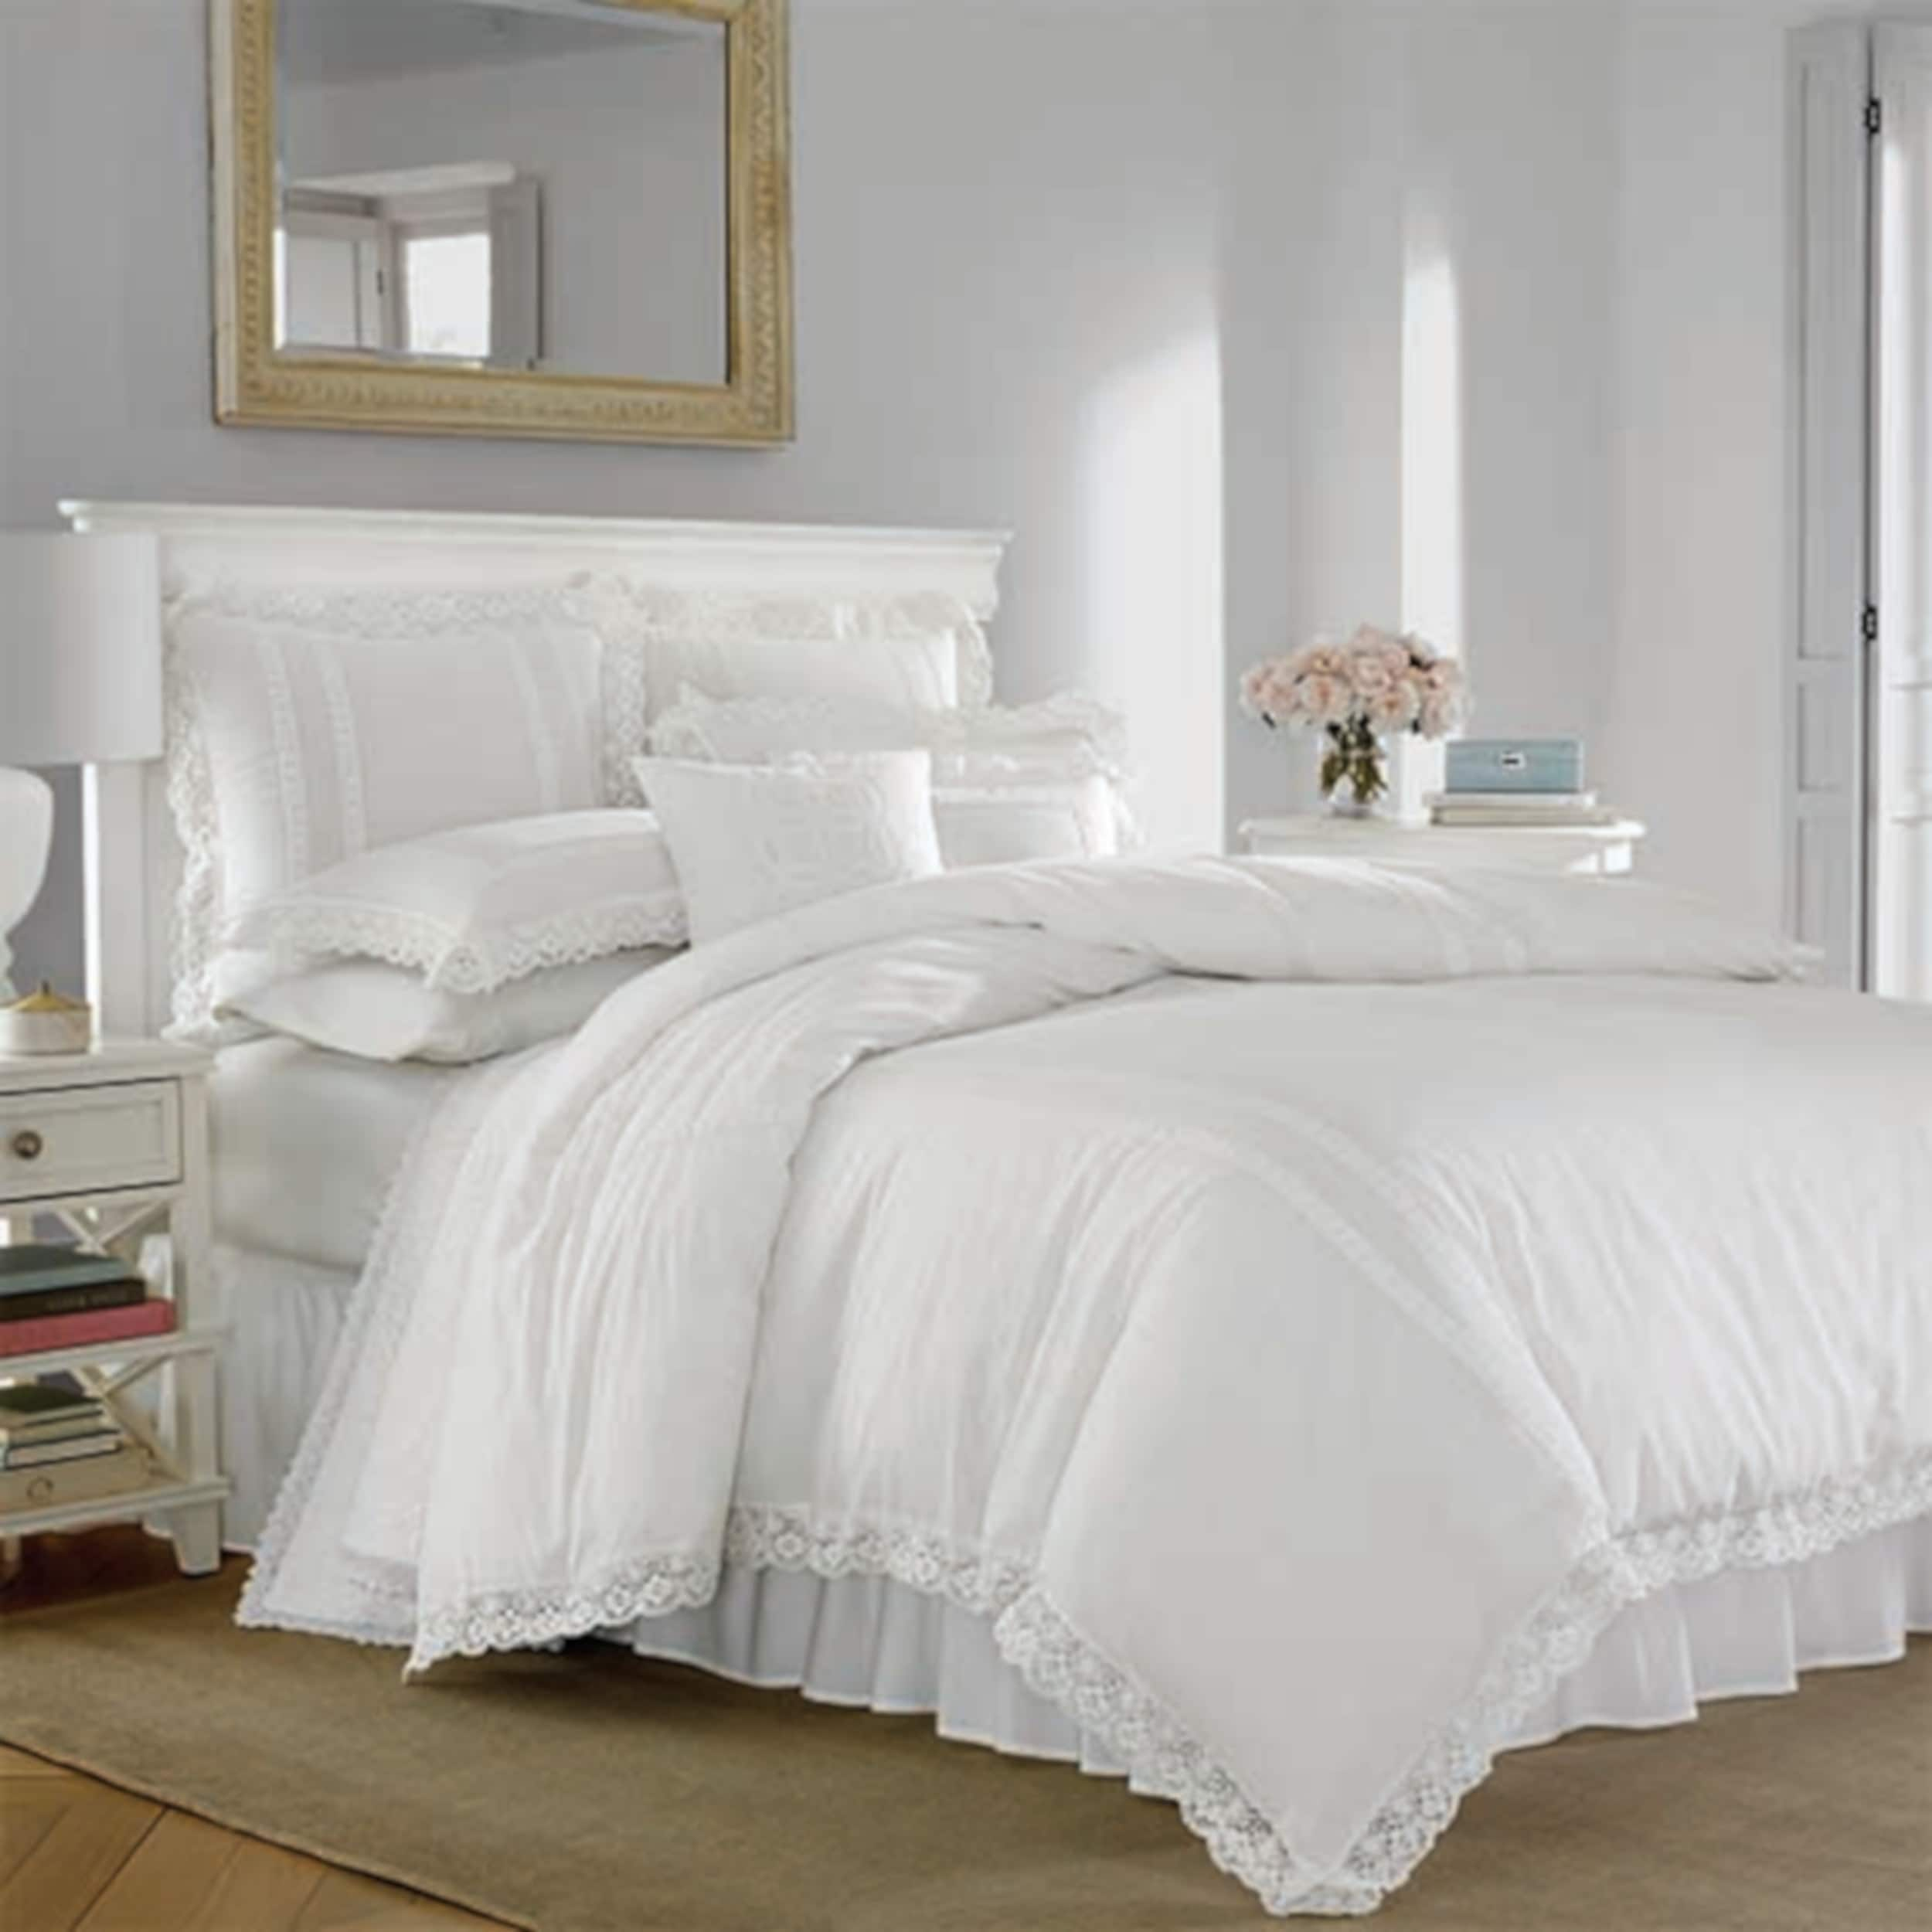 Tremendous Laura Ashley Annabella Comforter Set Download Free Architecture Designs Scobabritishbridgeorg